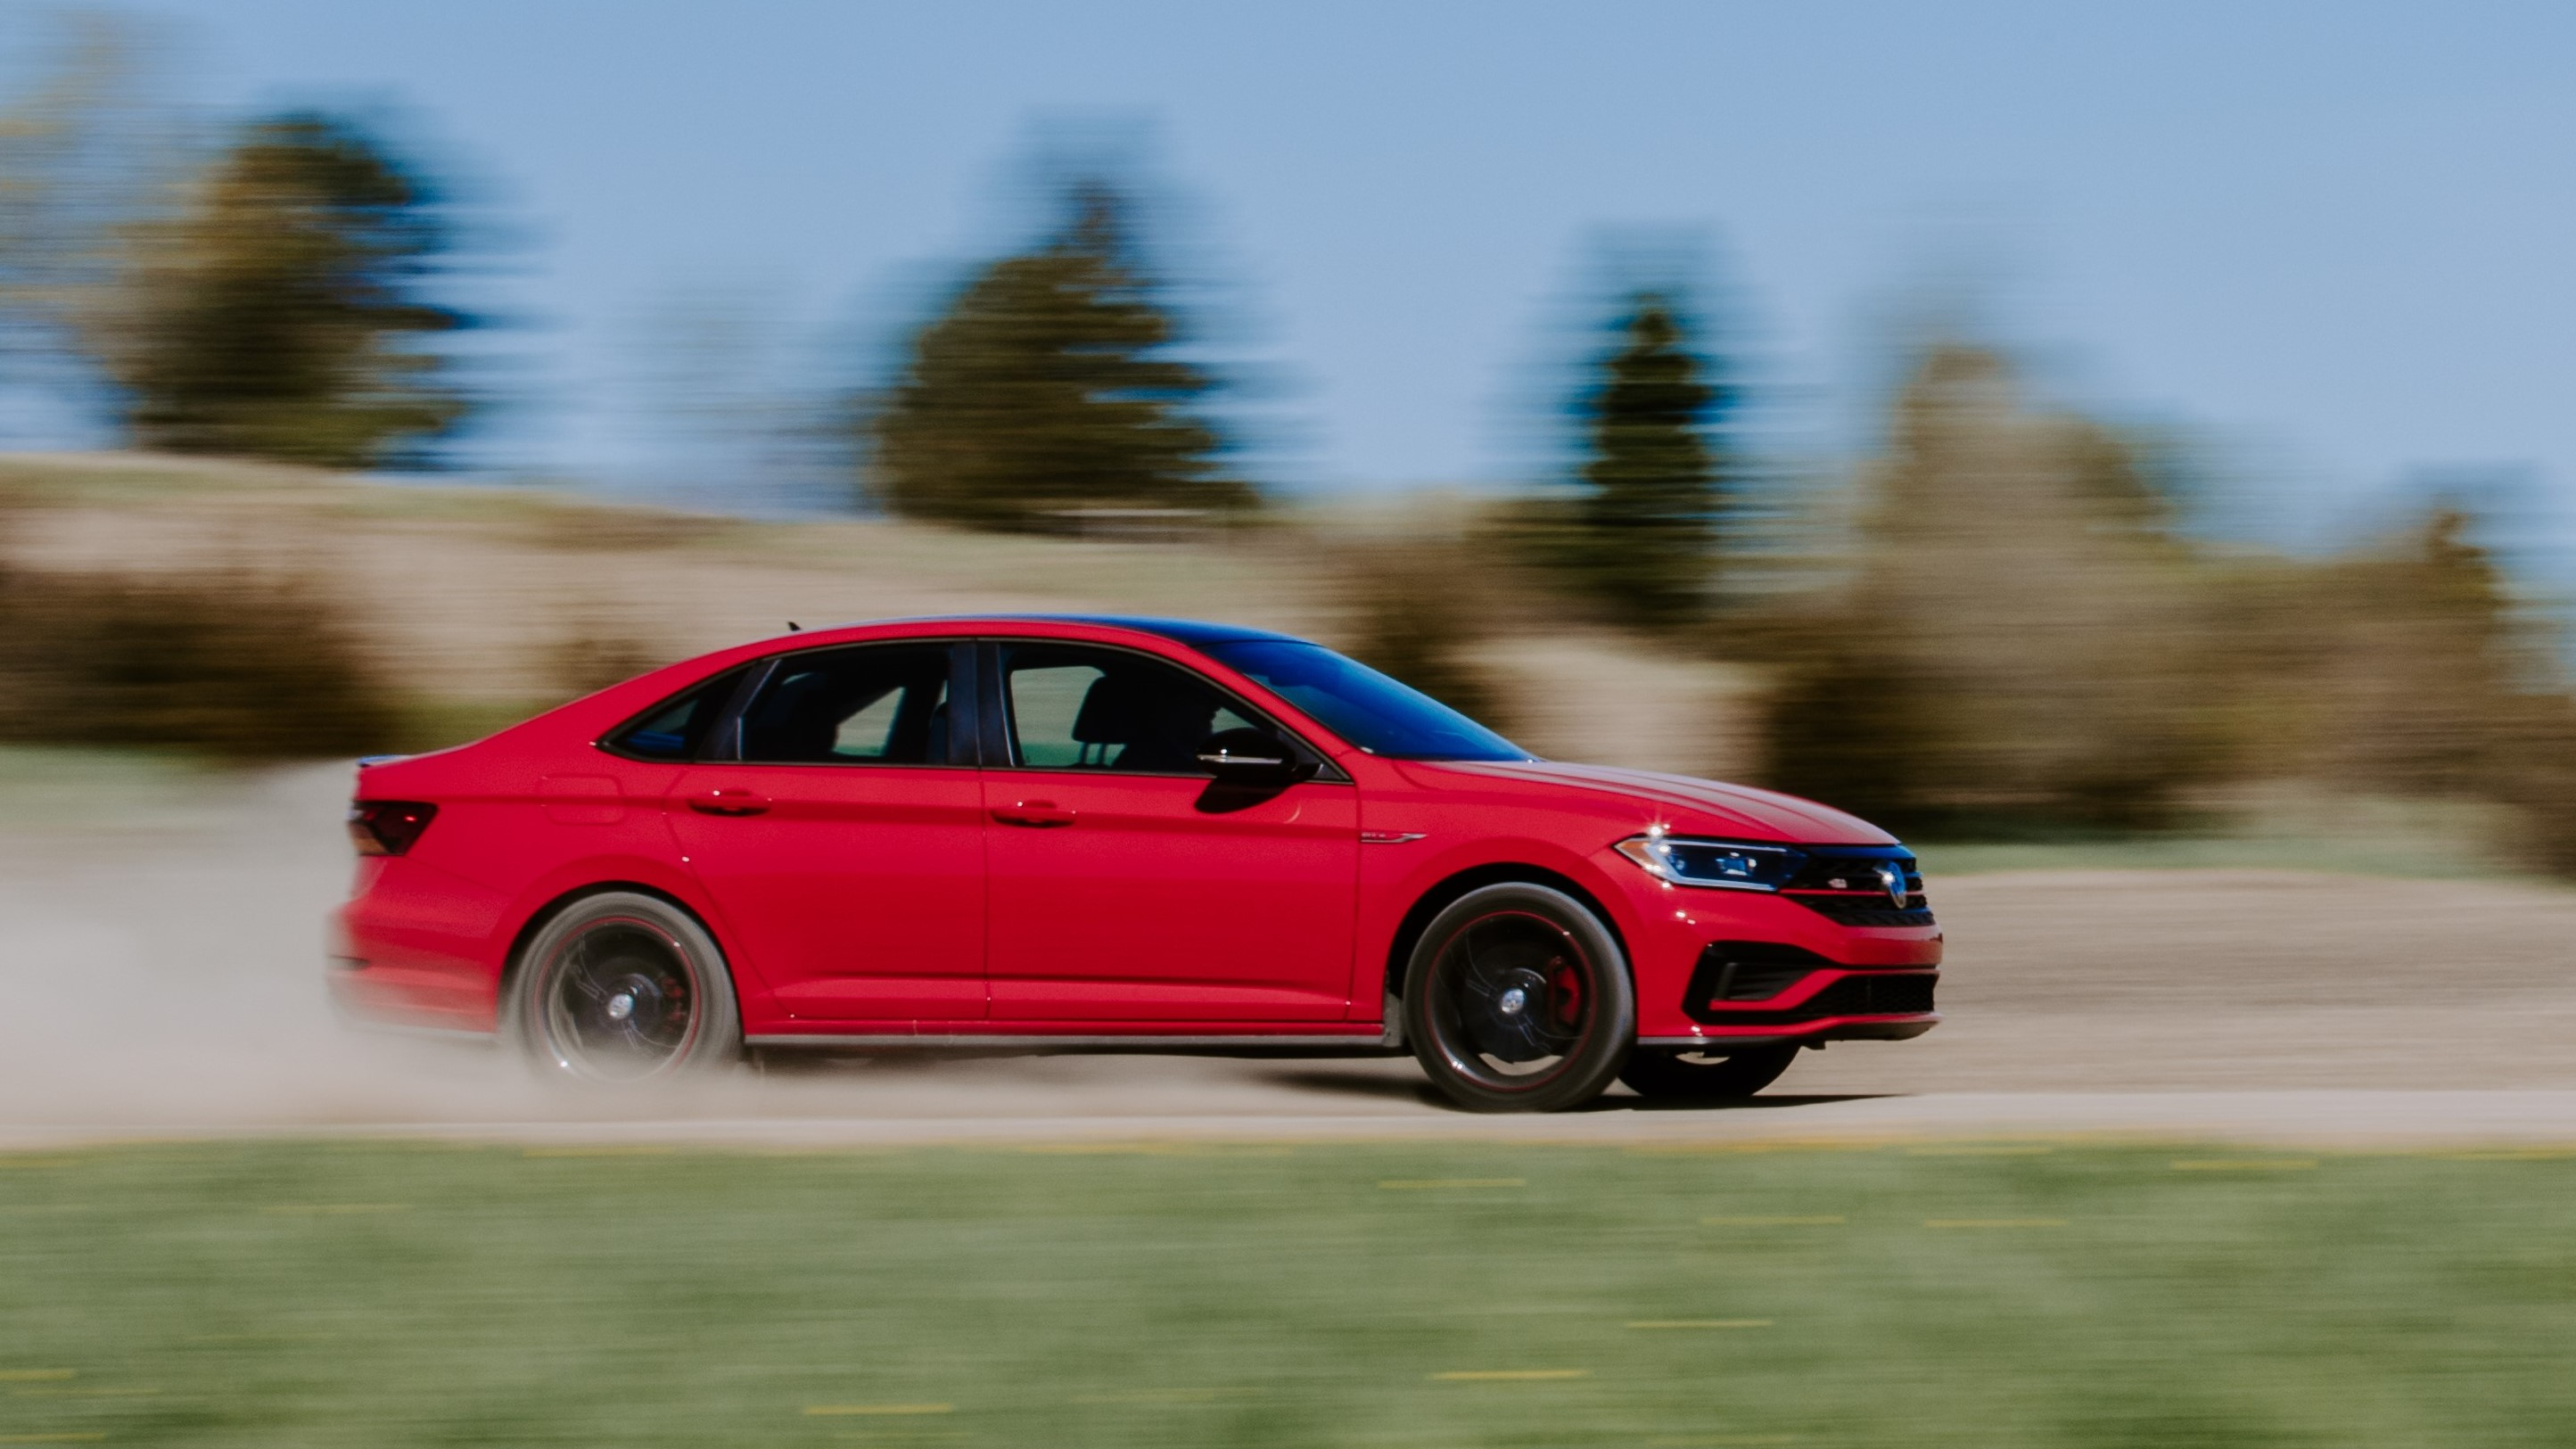 Why You Should Care About The 2019 Vw Jetta Gli S Customizable Drive Modes Techradar